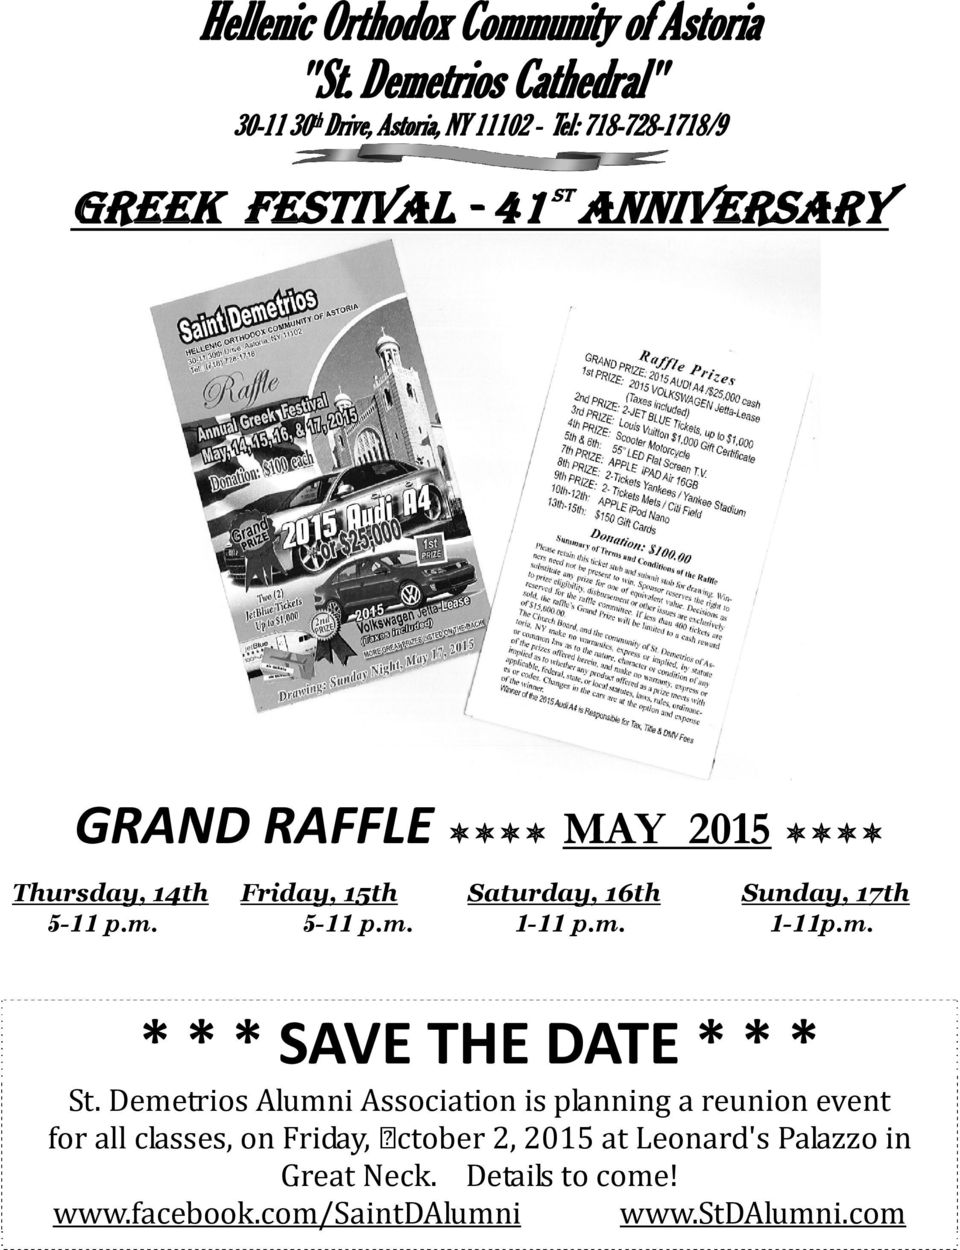 RAFFLE MAY 2015 Thursday, 14th Friday, 15th Saturday, 16th Sunday, 17th 5-11 p.m. 5-11 p.m. 1-11 p.m. 1-11p.m. * * * SAVE THE DATE * * * St.